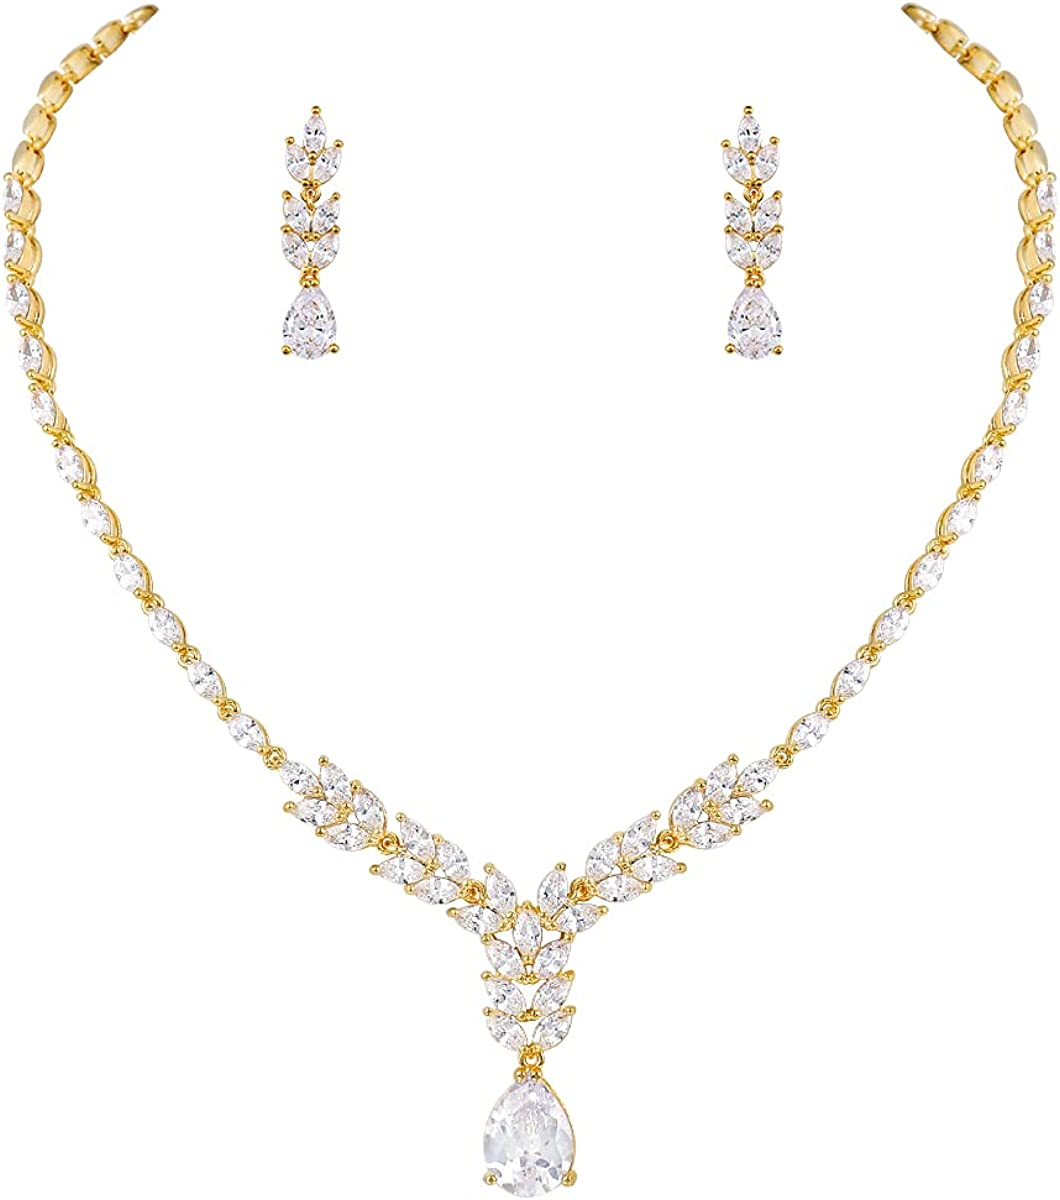 MEEDOZ Bridal Wedding Jewelry CZ Set Marquise Teardrop Cubic Zirconia Pendant Necklace and Dangle Earring Sets for Women Girls